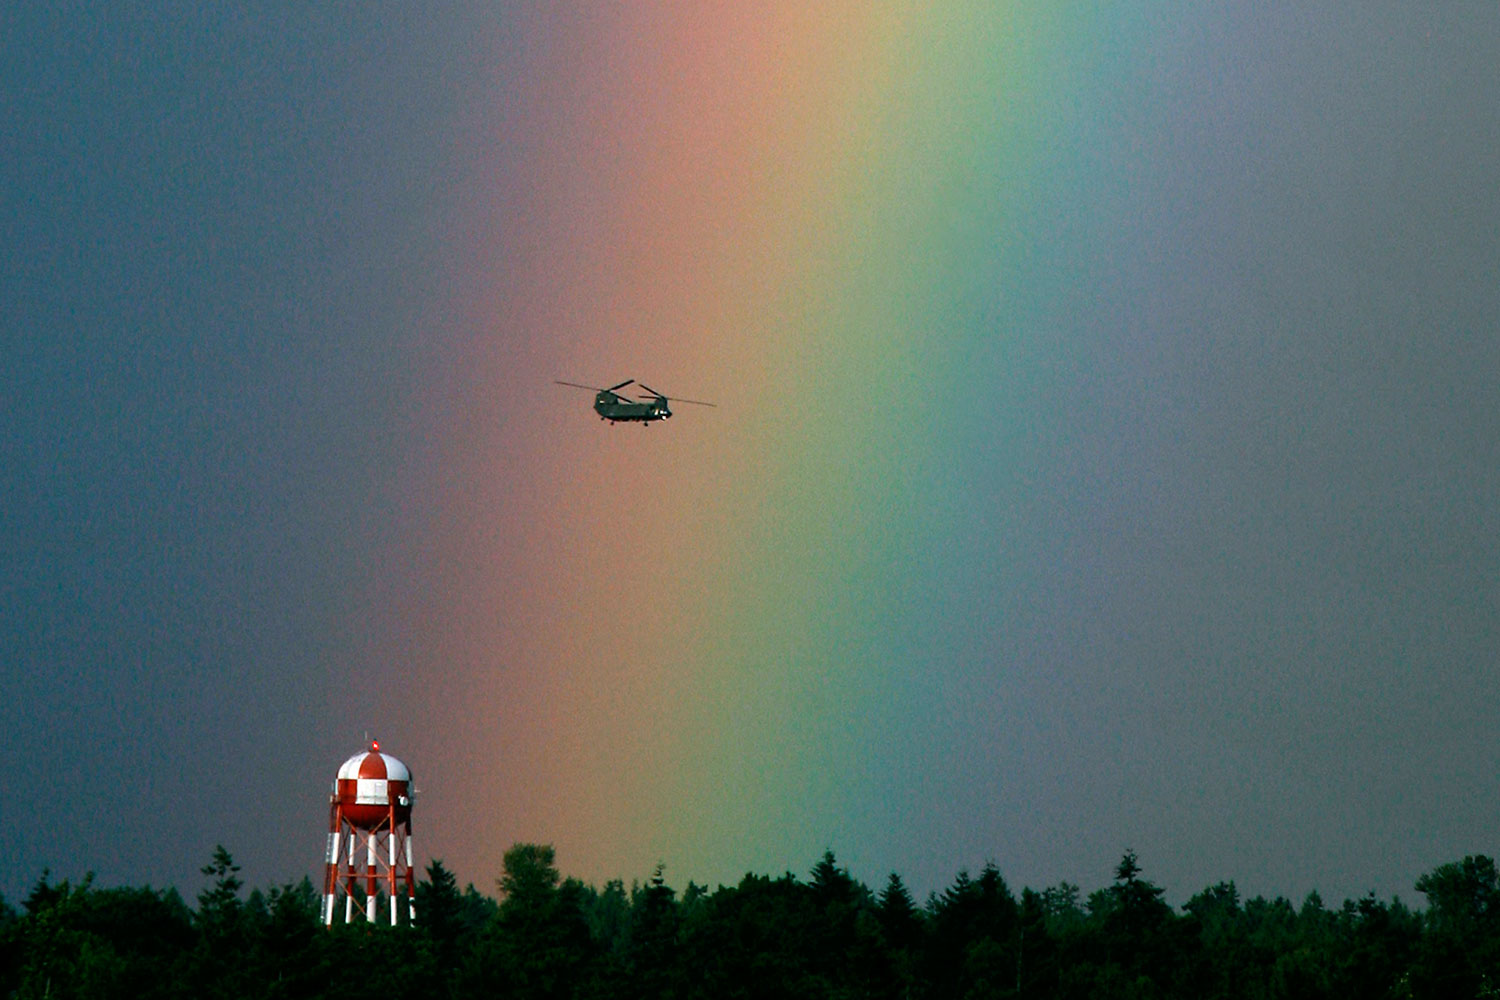 The Safe Return of Those Who Serve                               June 25, 2012. A Chinook helicopter passes before a rainbow as it maneuvers north of DuPont, Wash.